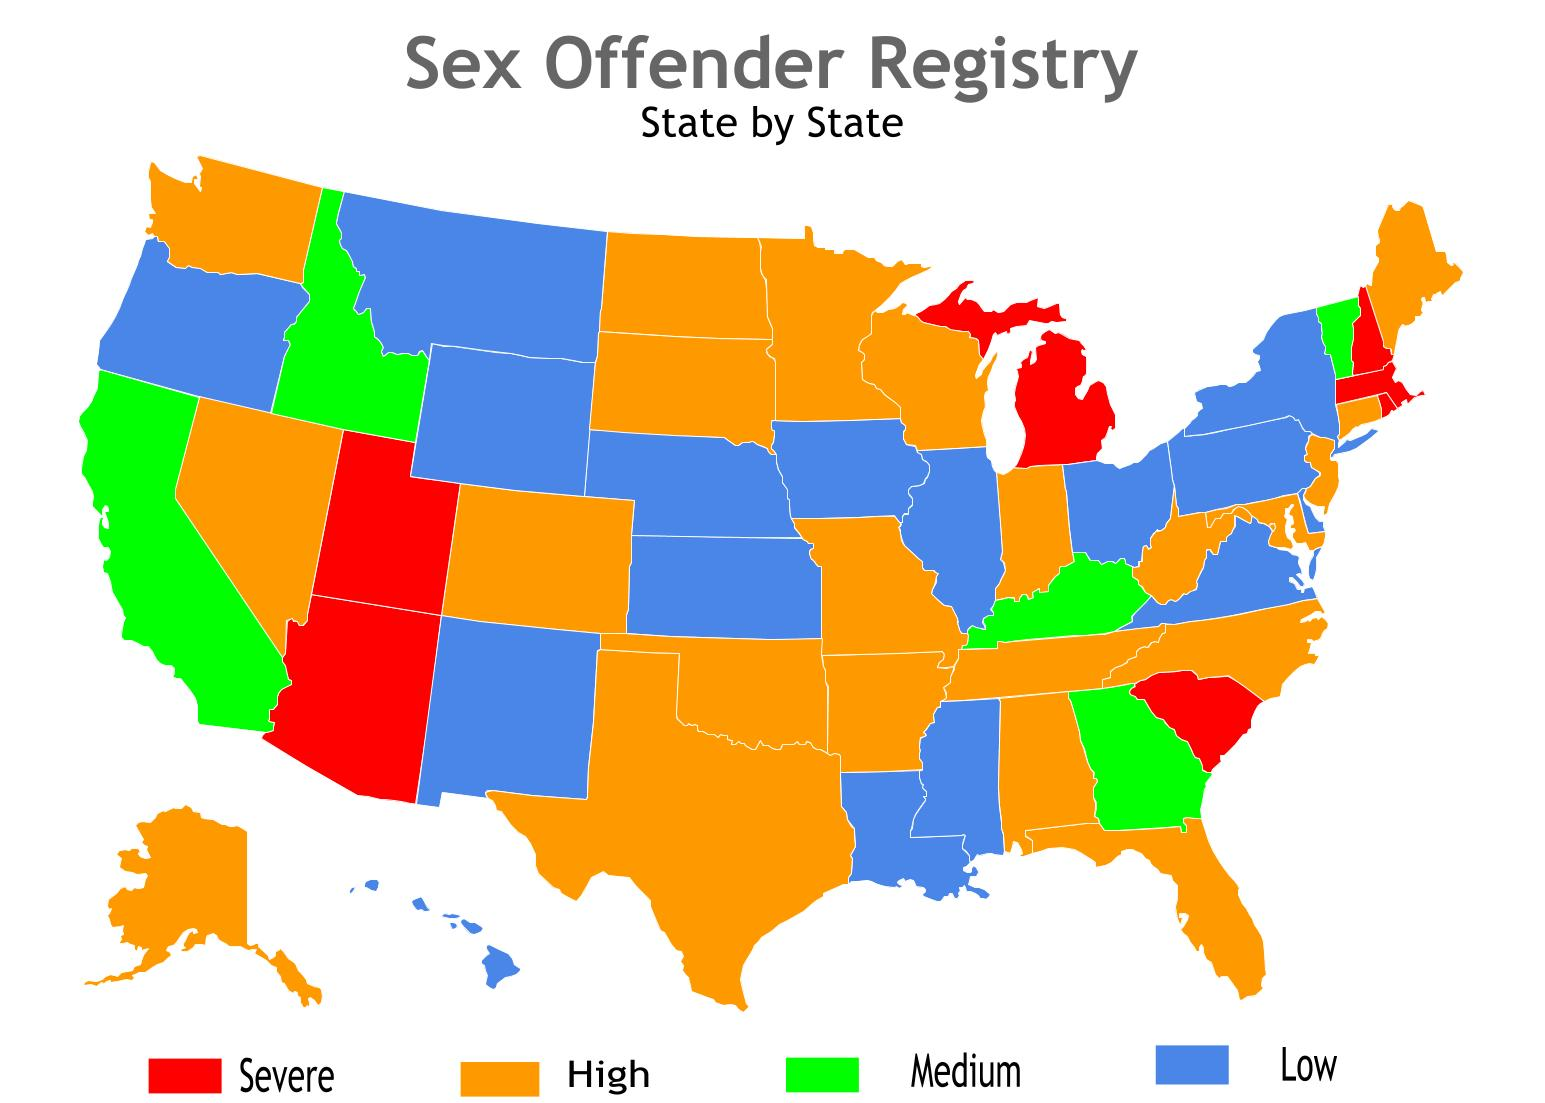 Any new laws for sex offenders